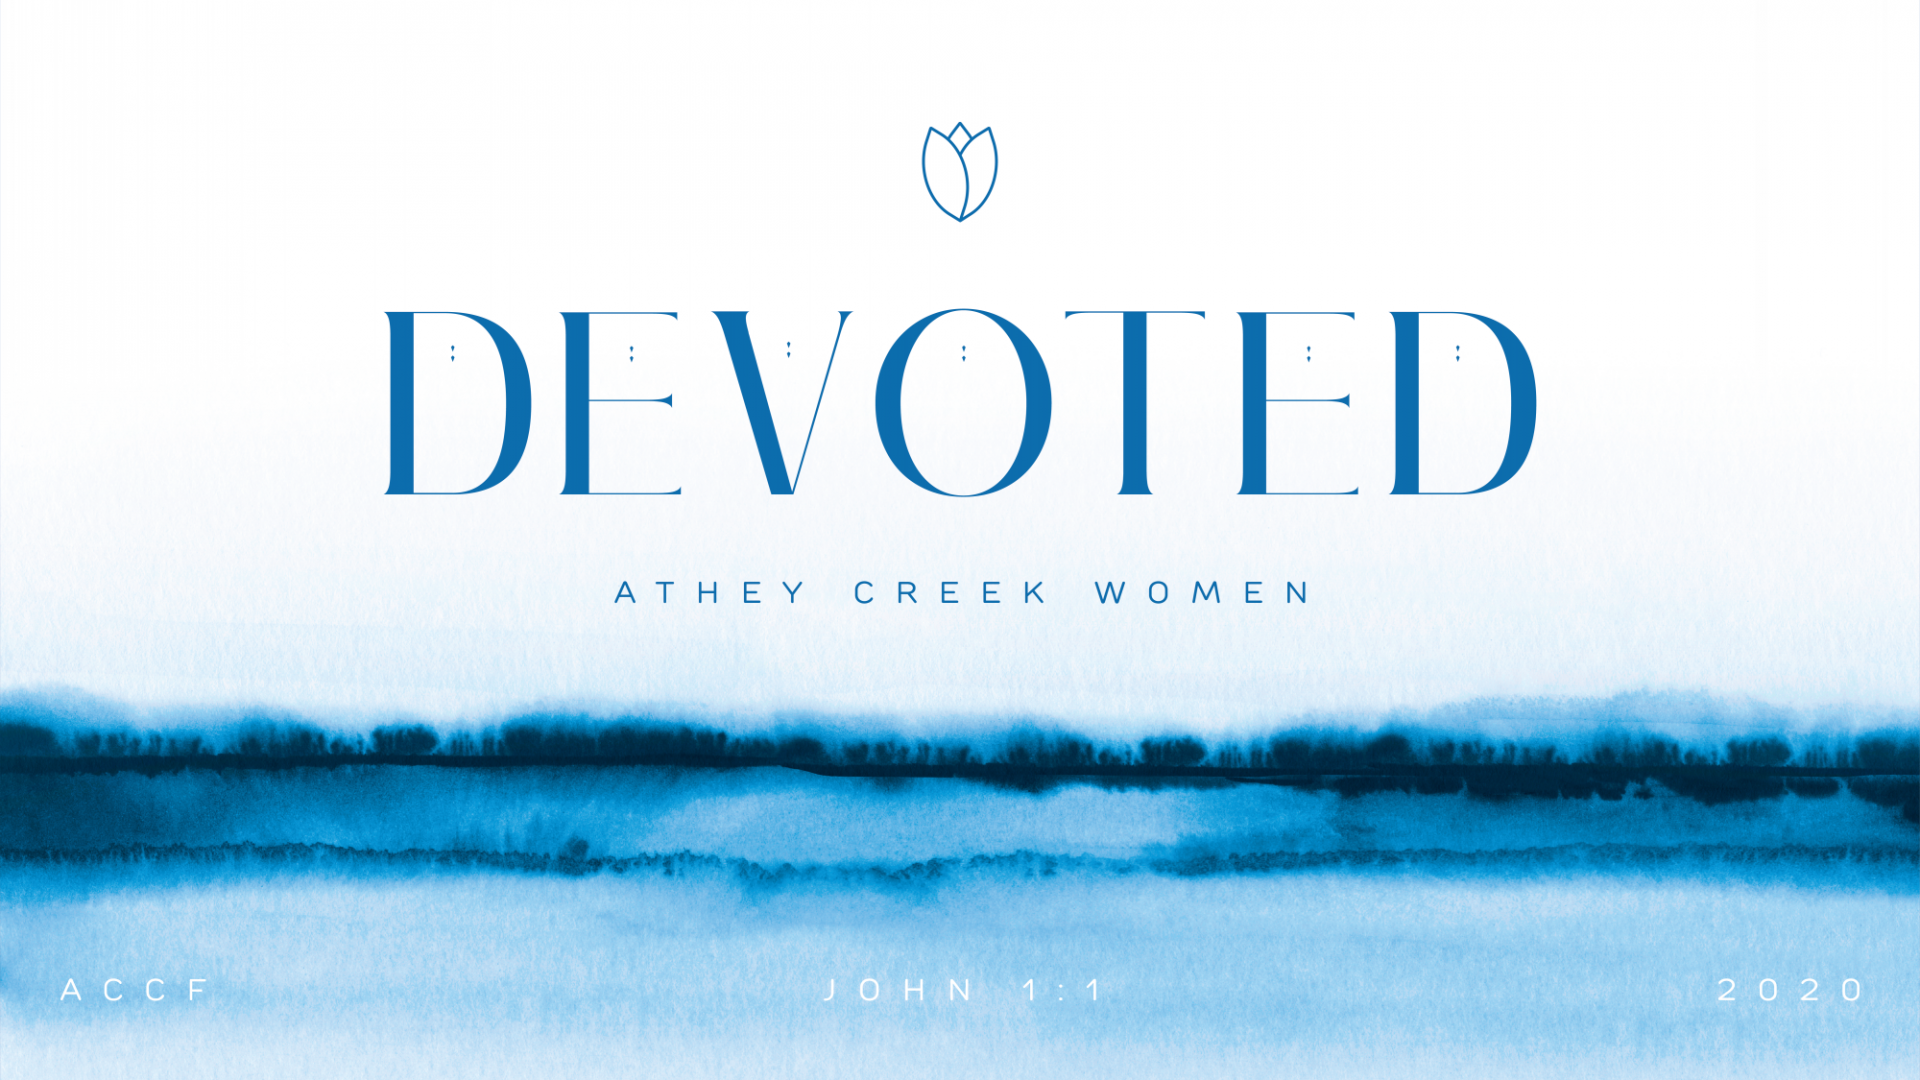 Poster for Devoted